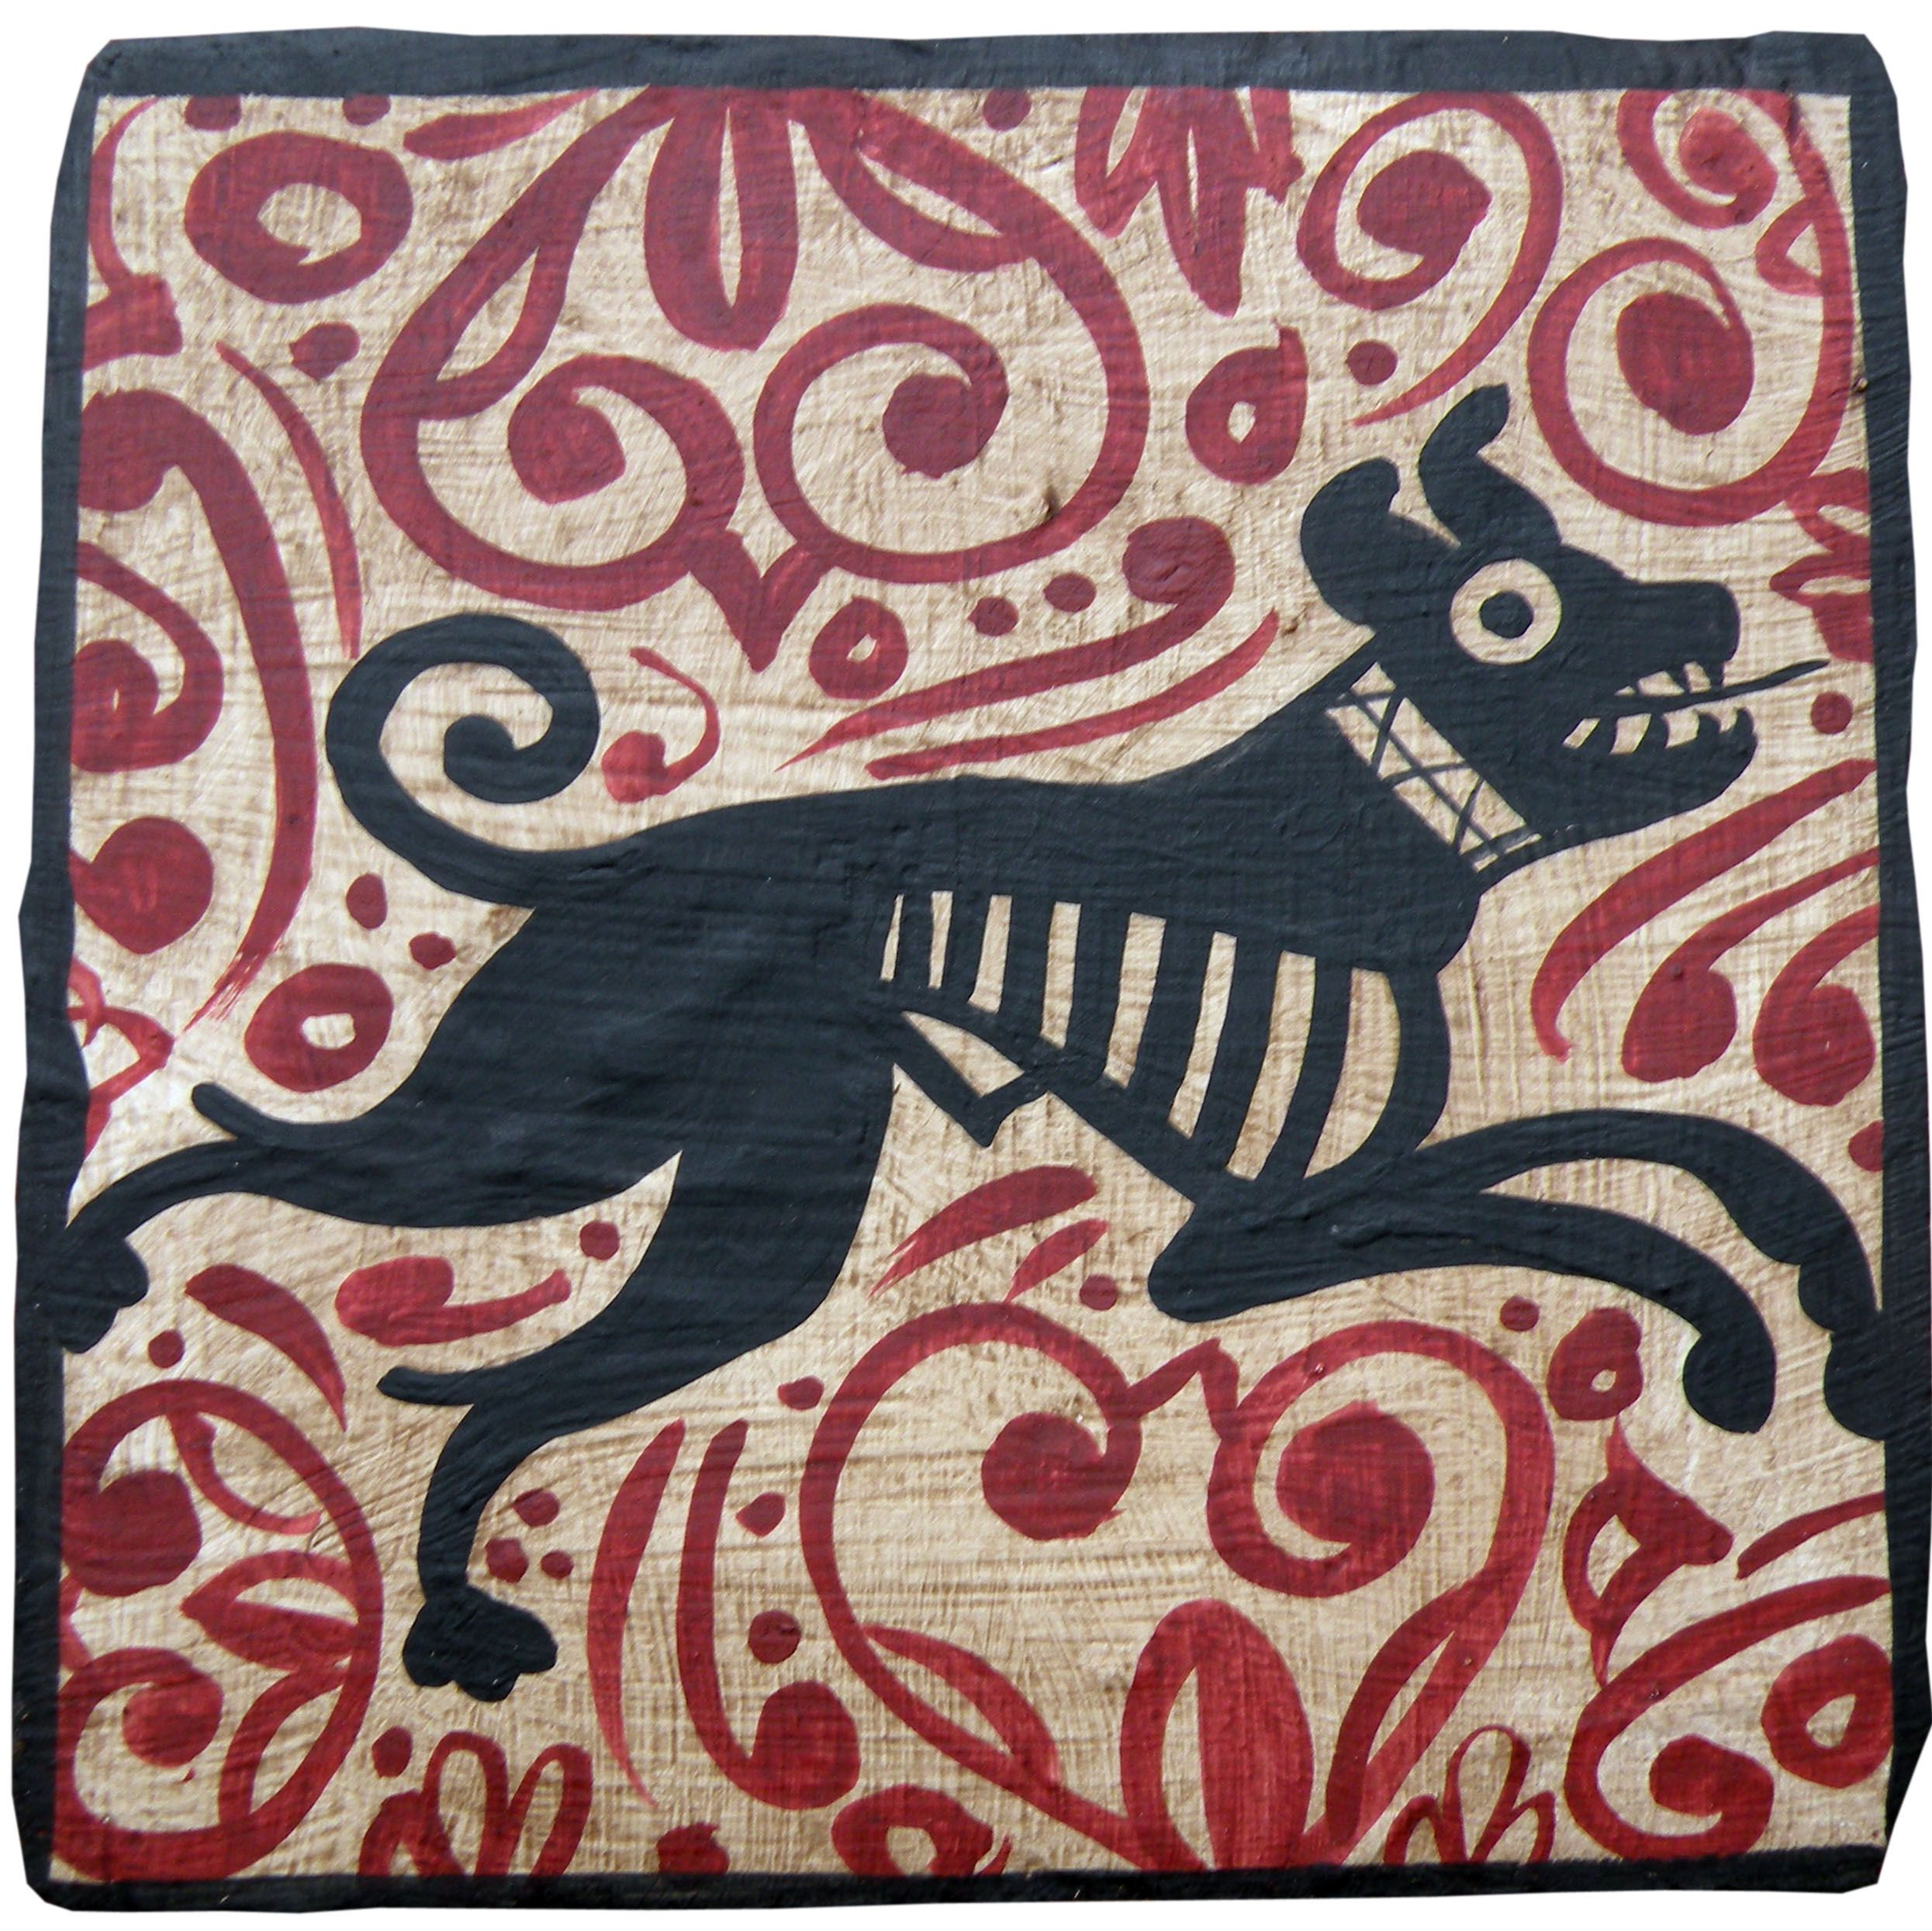 This hand painted ceramic tile shows a medieval hunting dog this hand painted ceramic tile shows a medieval hunting dog complete with spiked collar dailygadgetfo Image collections